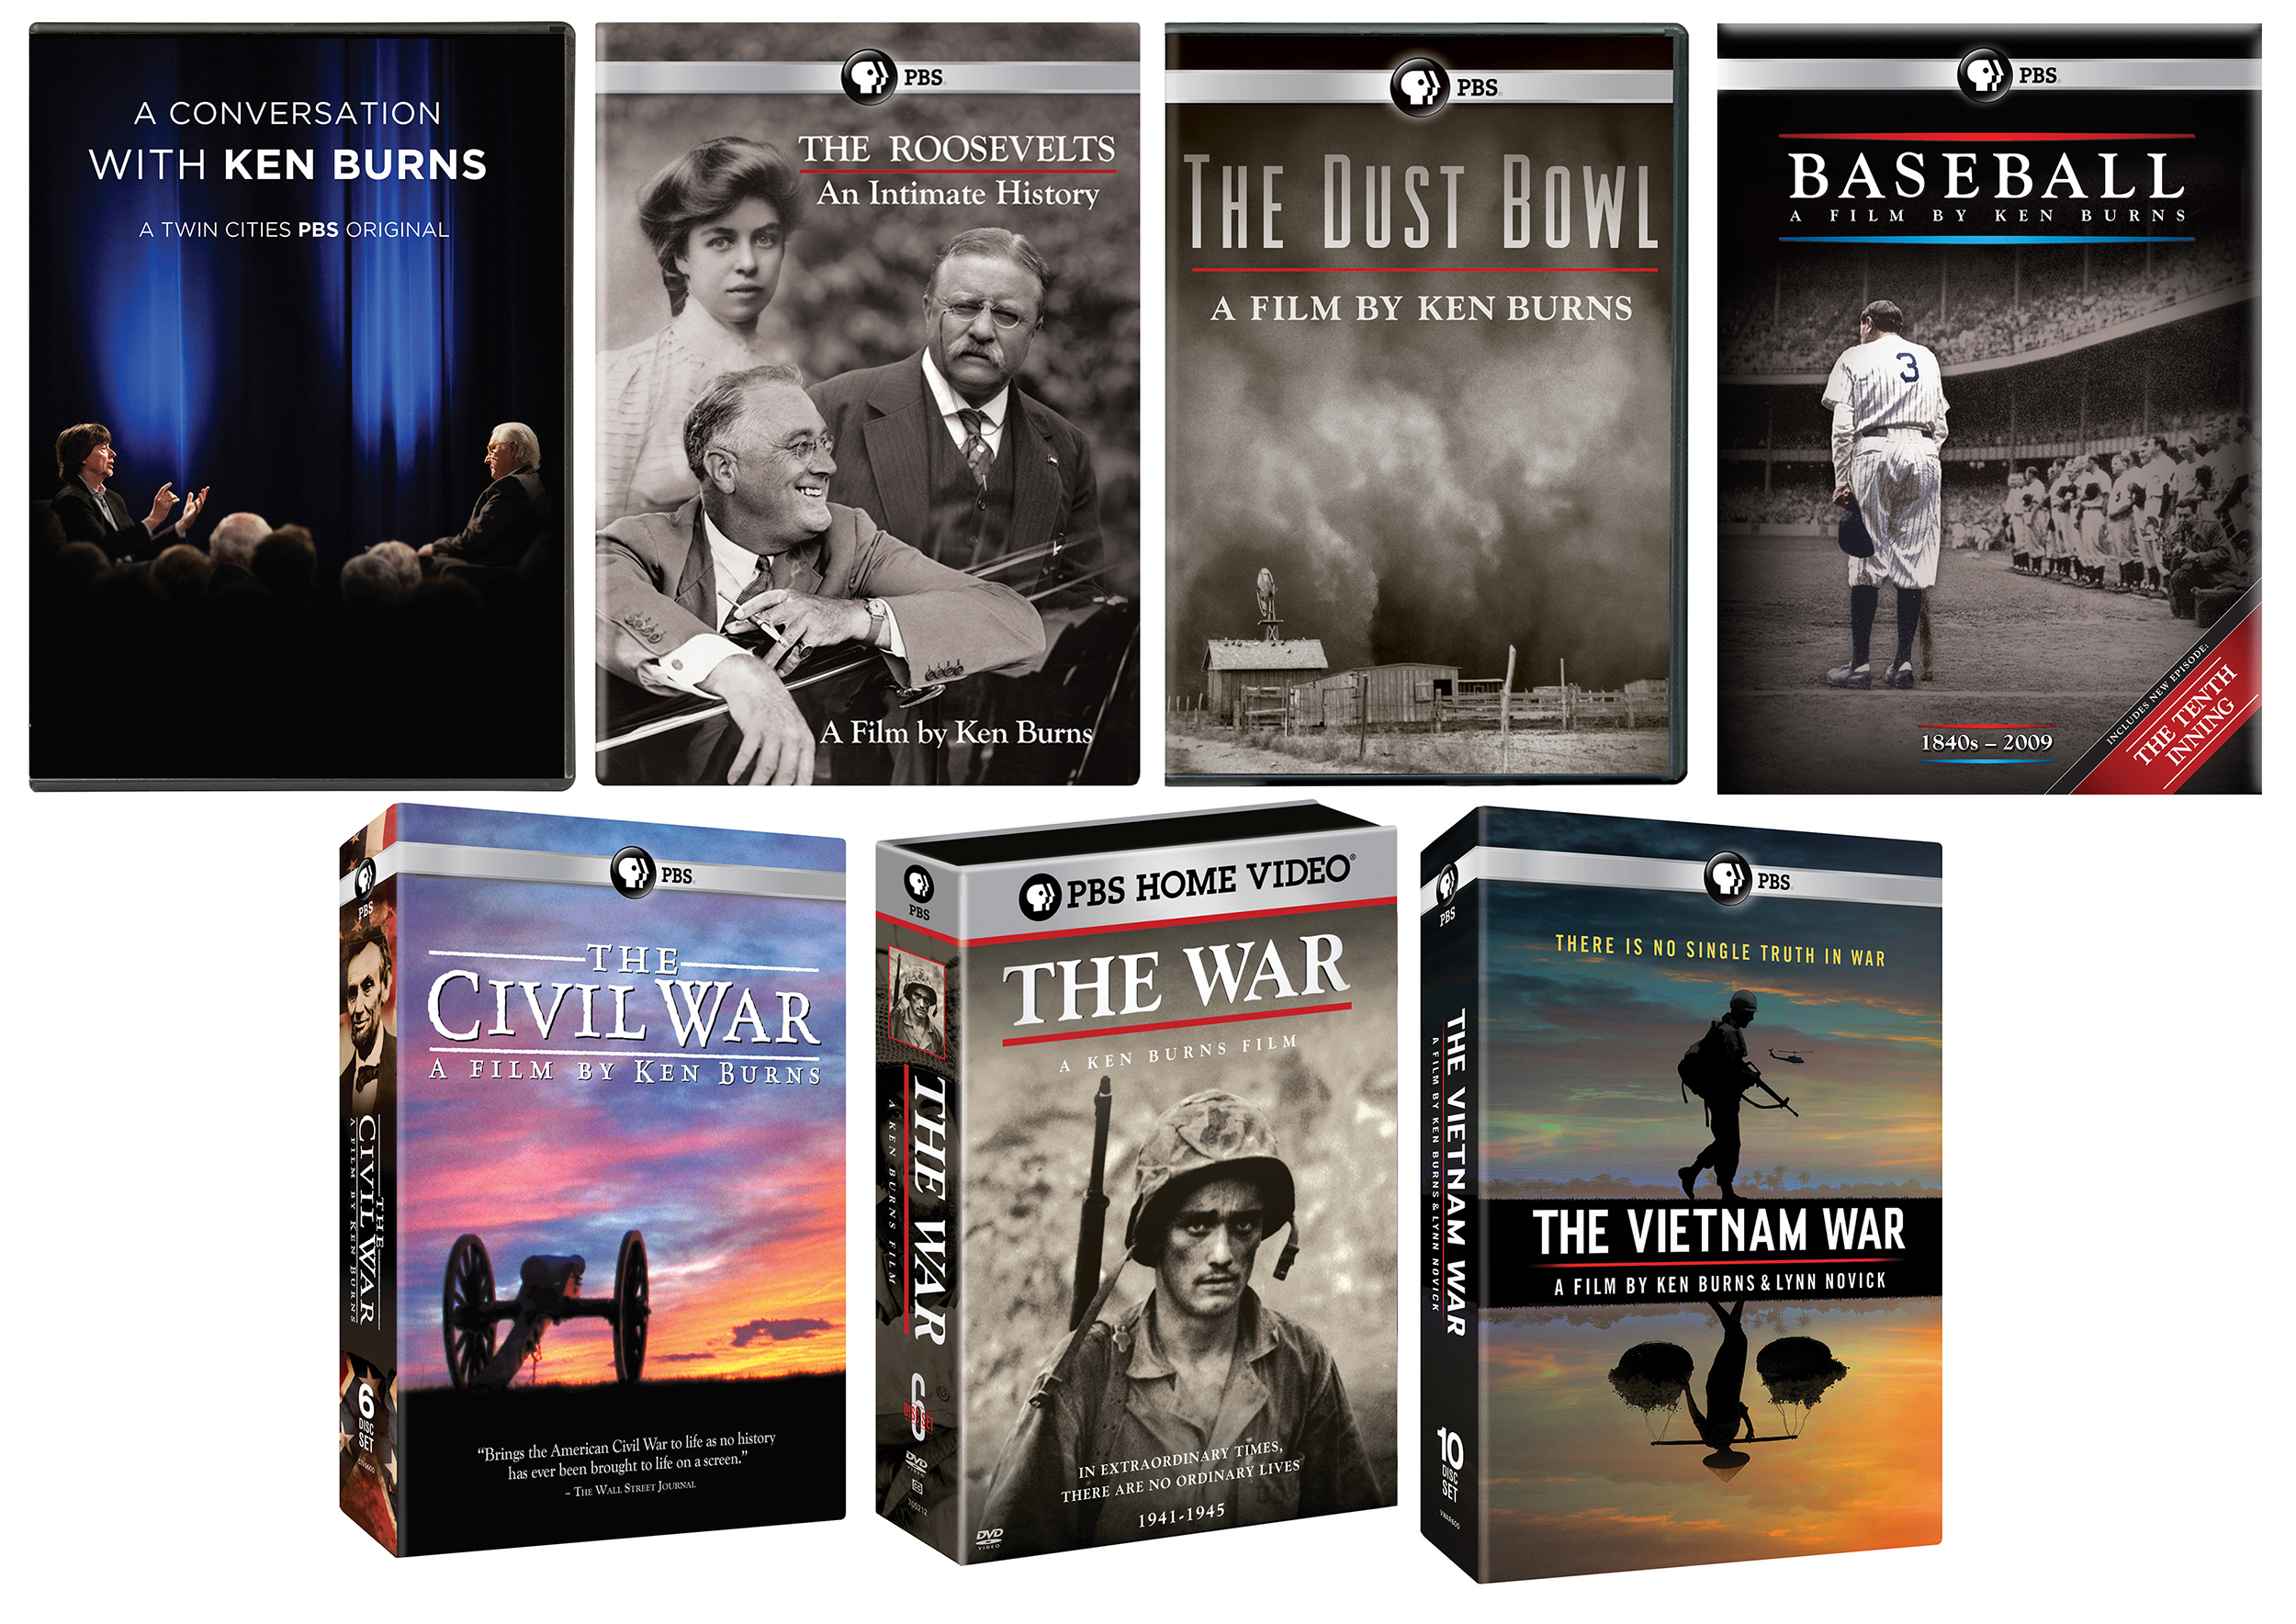 e35086a23 A Conversation with Ken Burns Combo  DVD + 42 DVDs